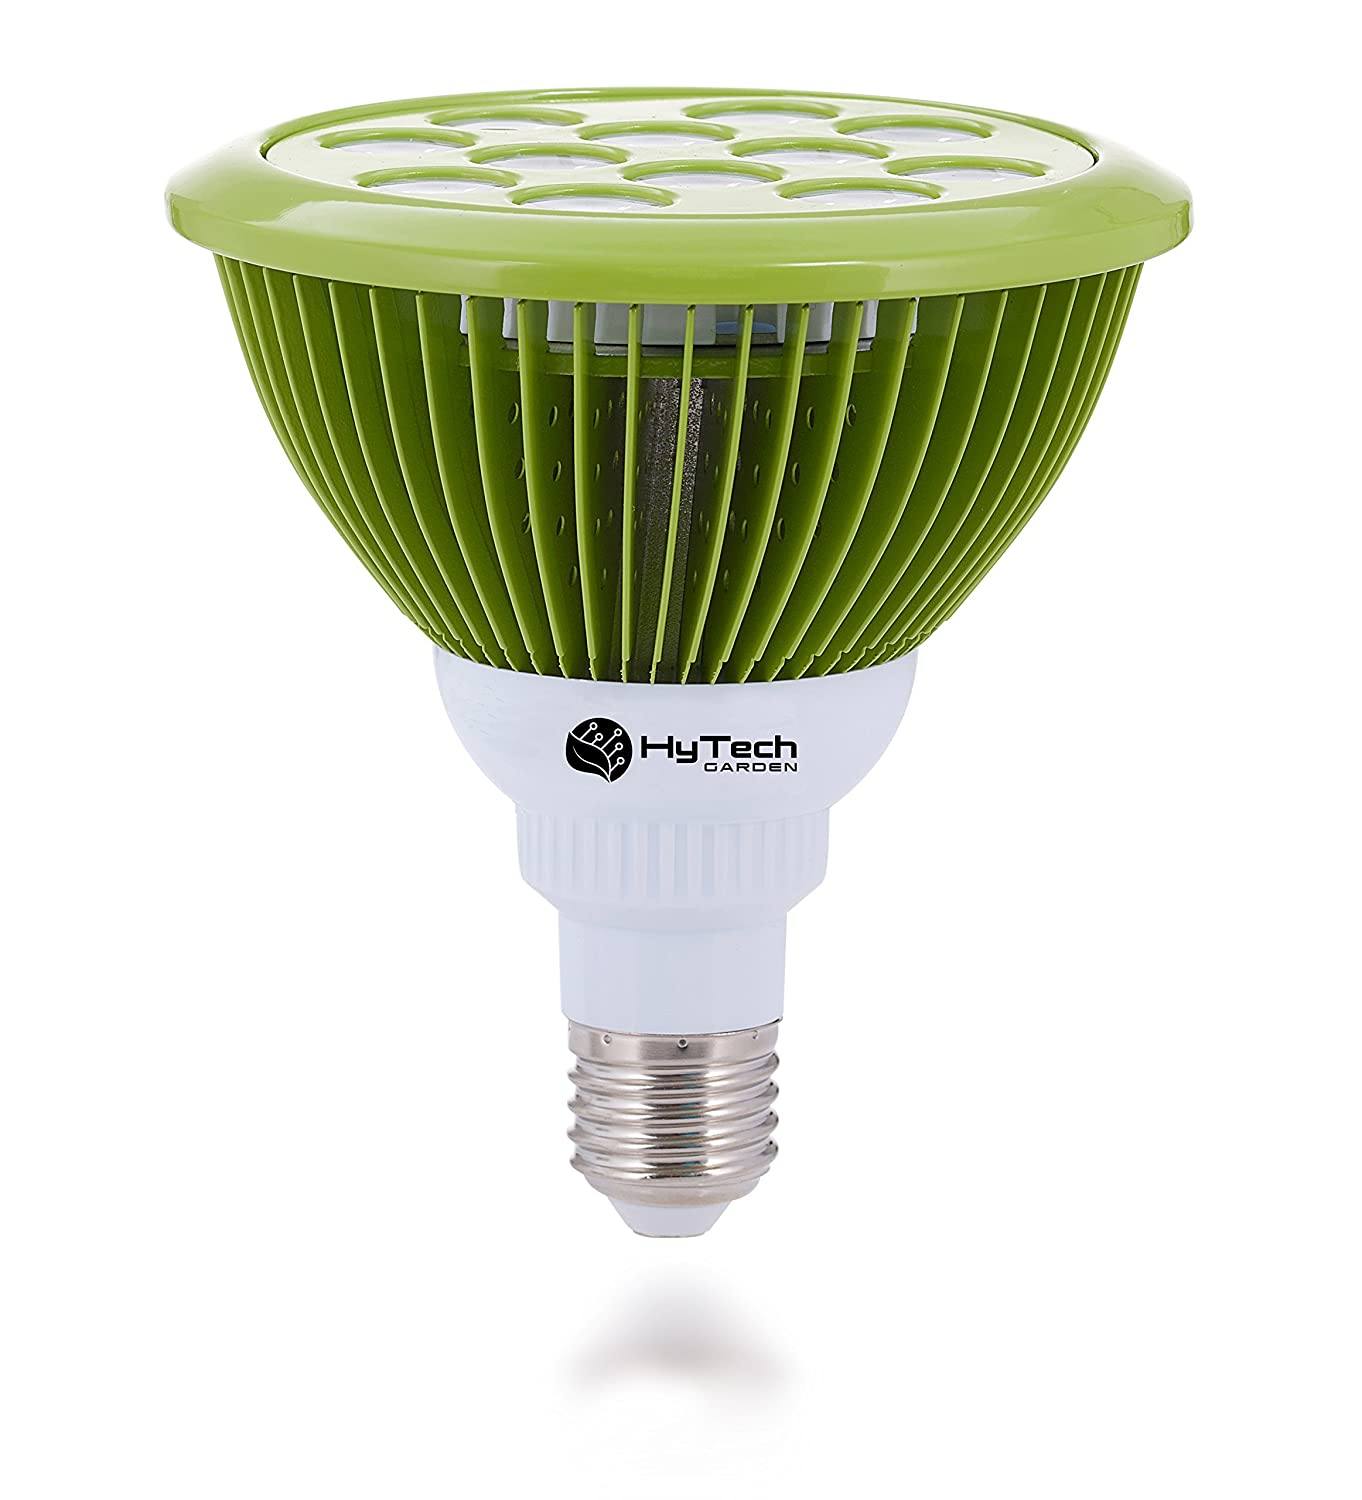 Amazon.com : HyTech Garden LED Grow Light Bulb For Indoor Gardening,  Hydroponics, Greenhouse Systems Great For Growing Herbs, Succulents,  Fruits, ...